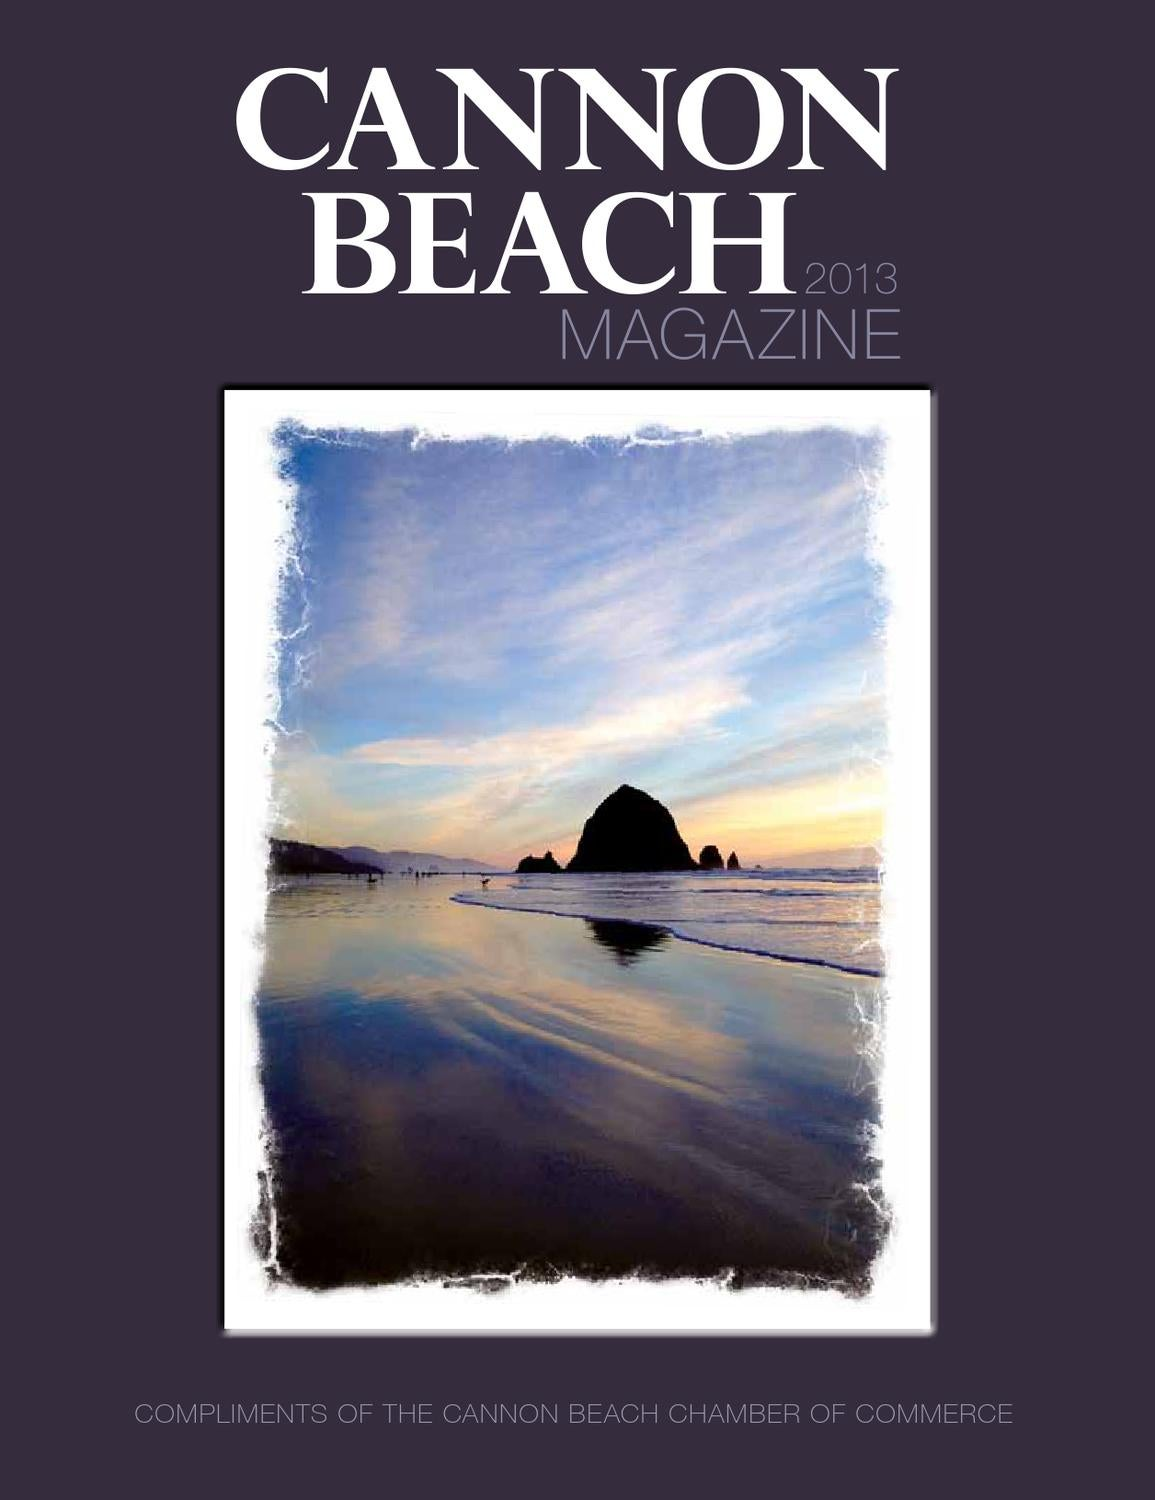 Cannon Beach Magazine 2013